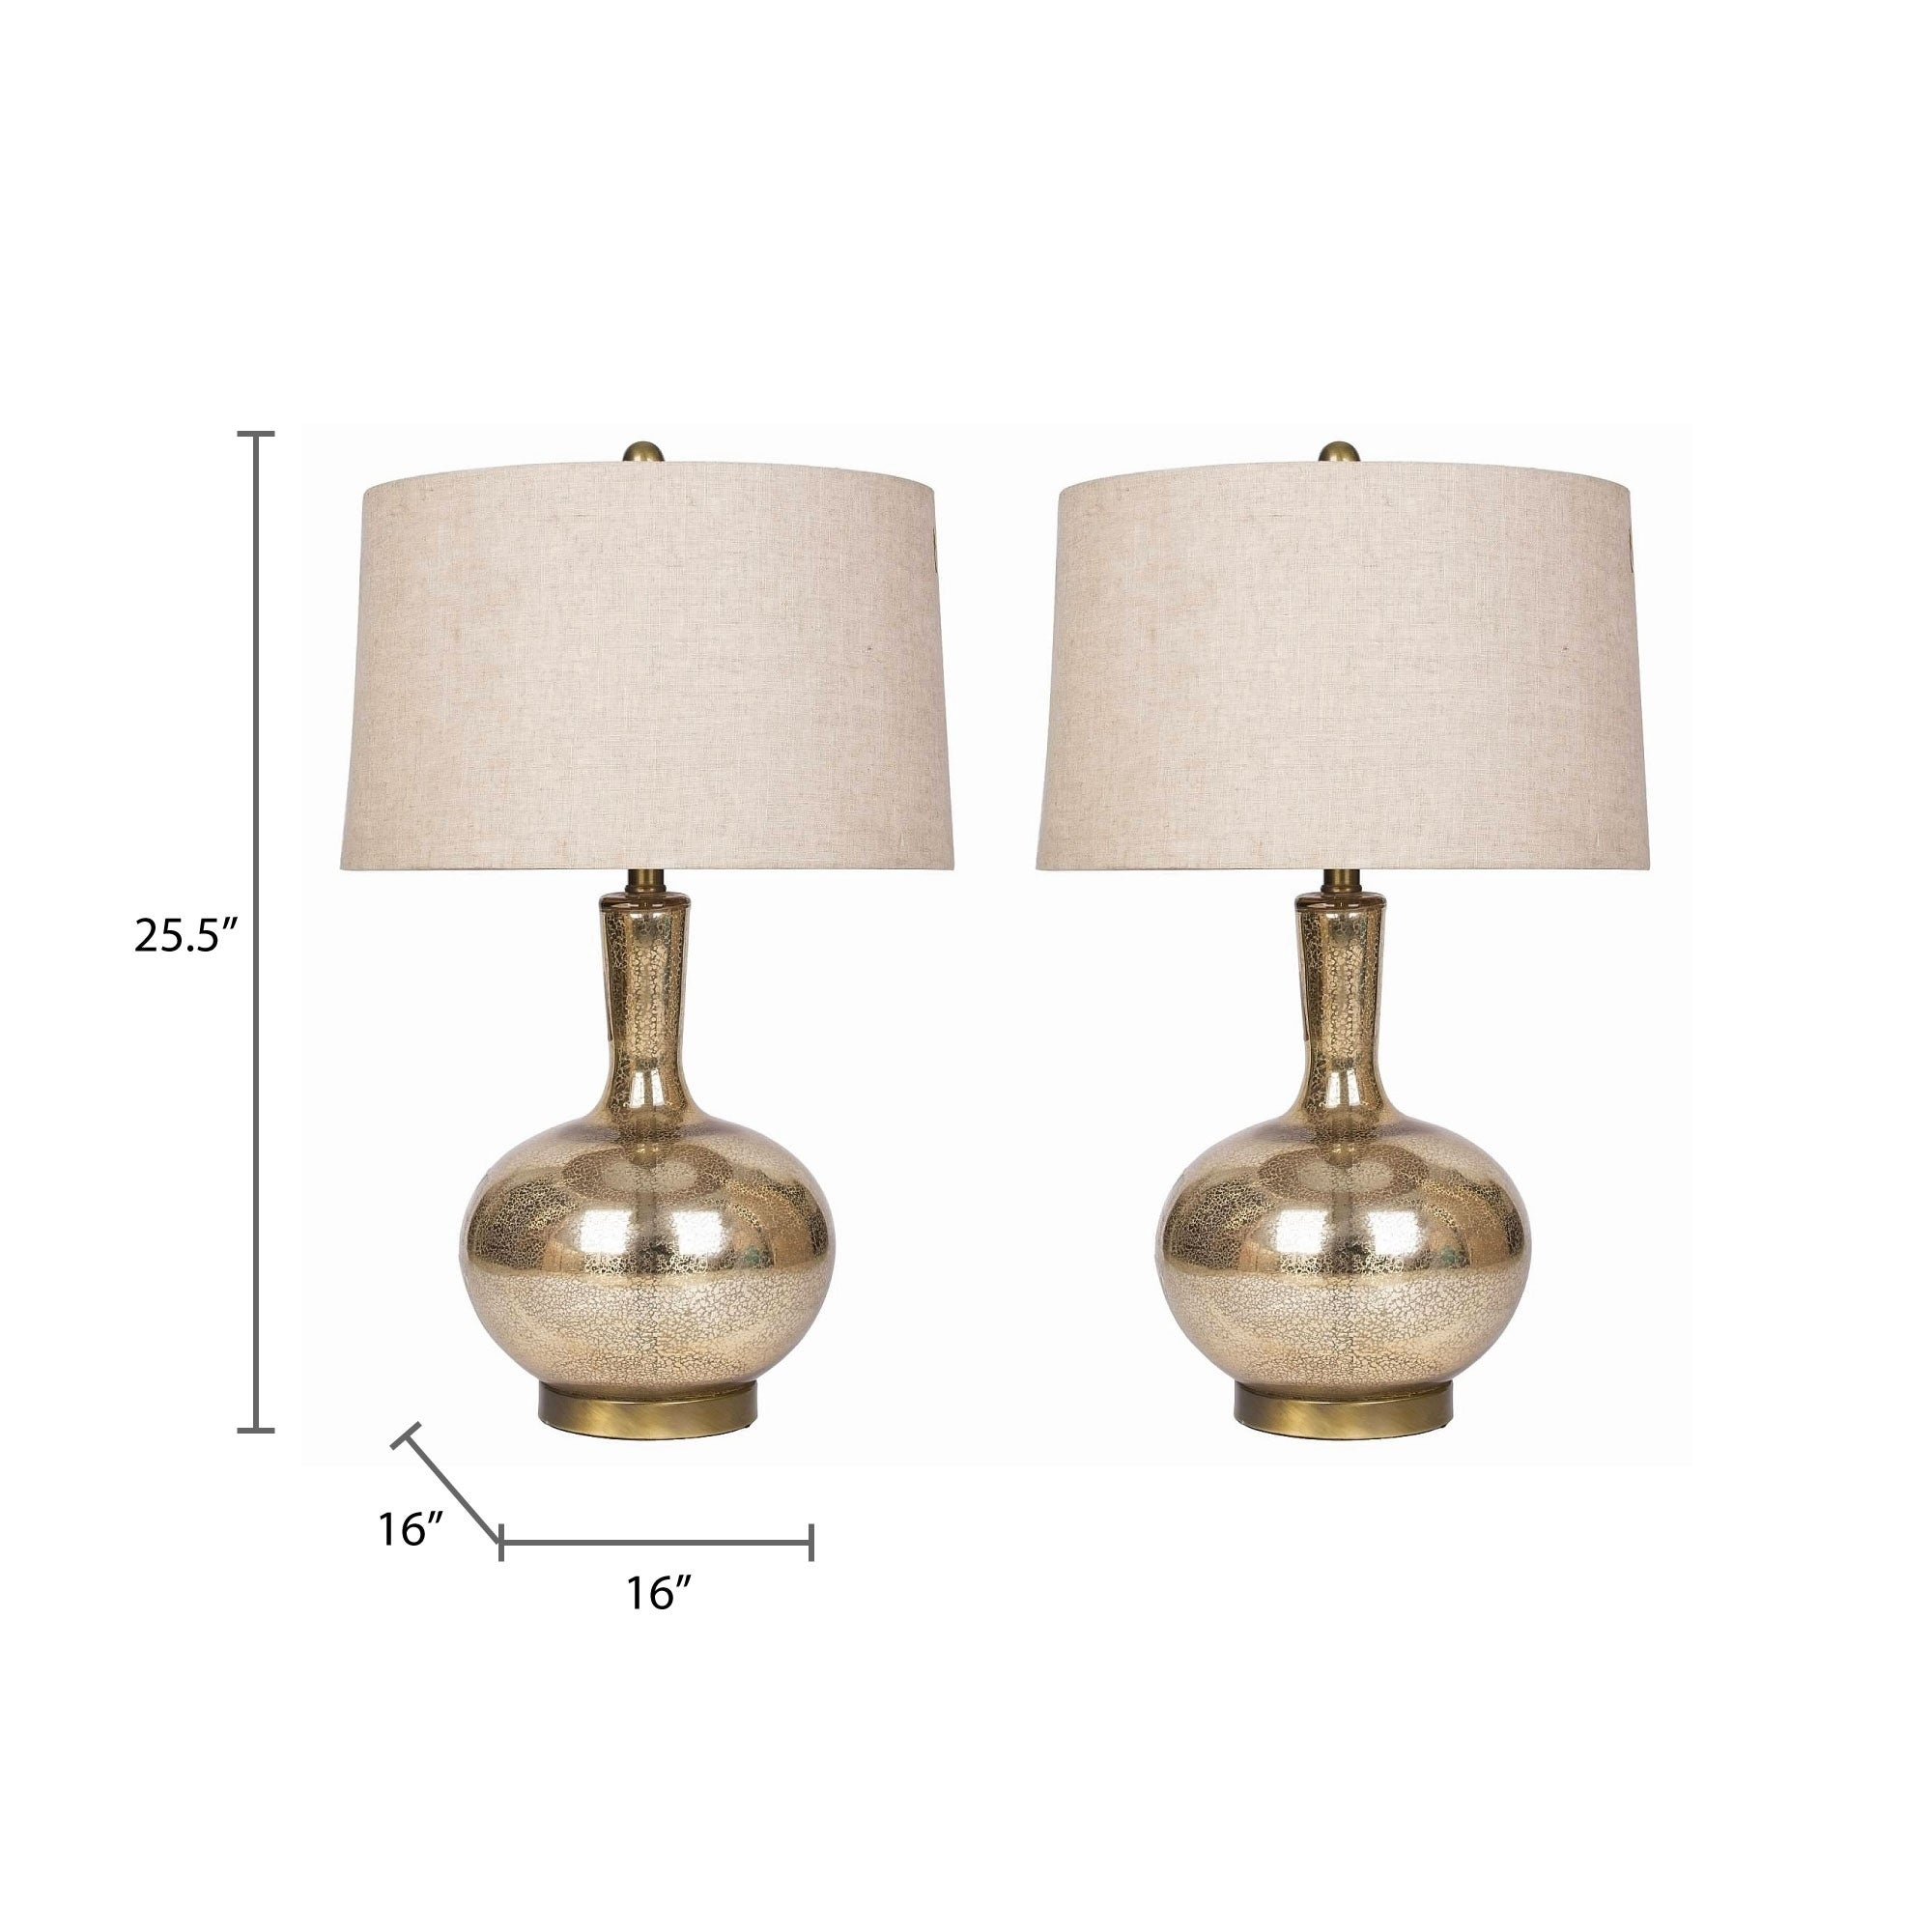 Abbyson Gold Mercury Gl 25 5 Inch Table Lamp Set Of 2 On Free Shipping Today 10992583